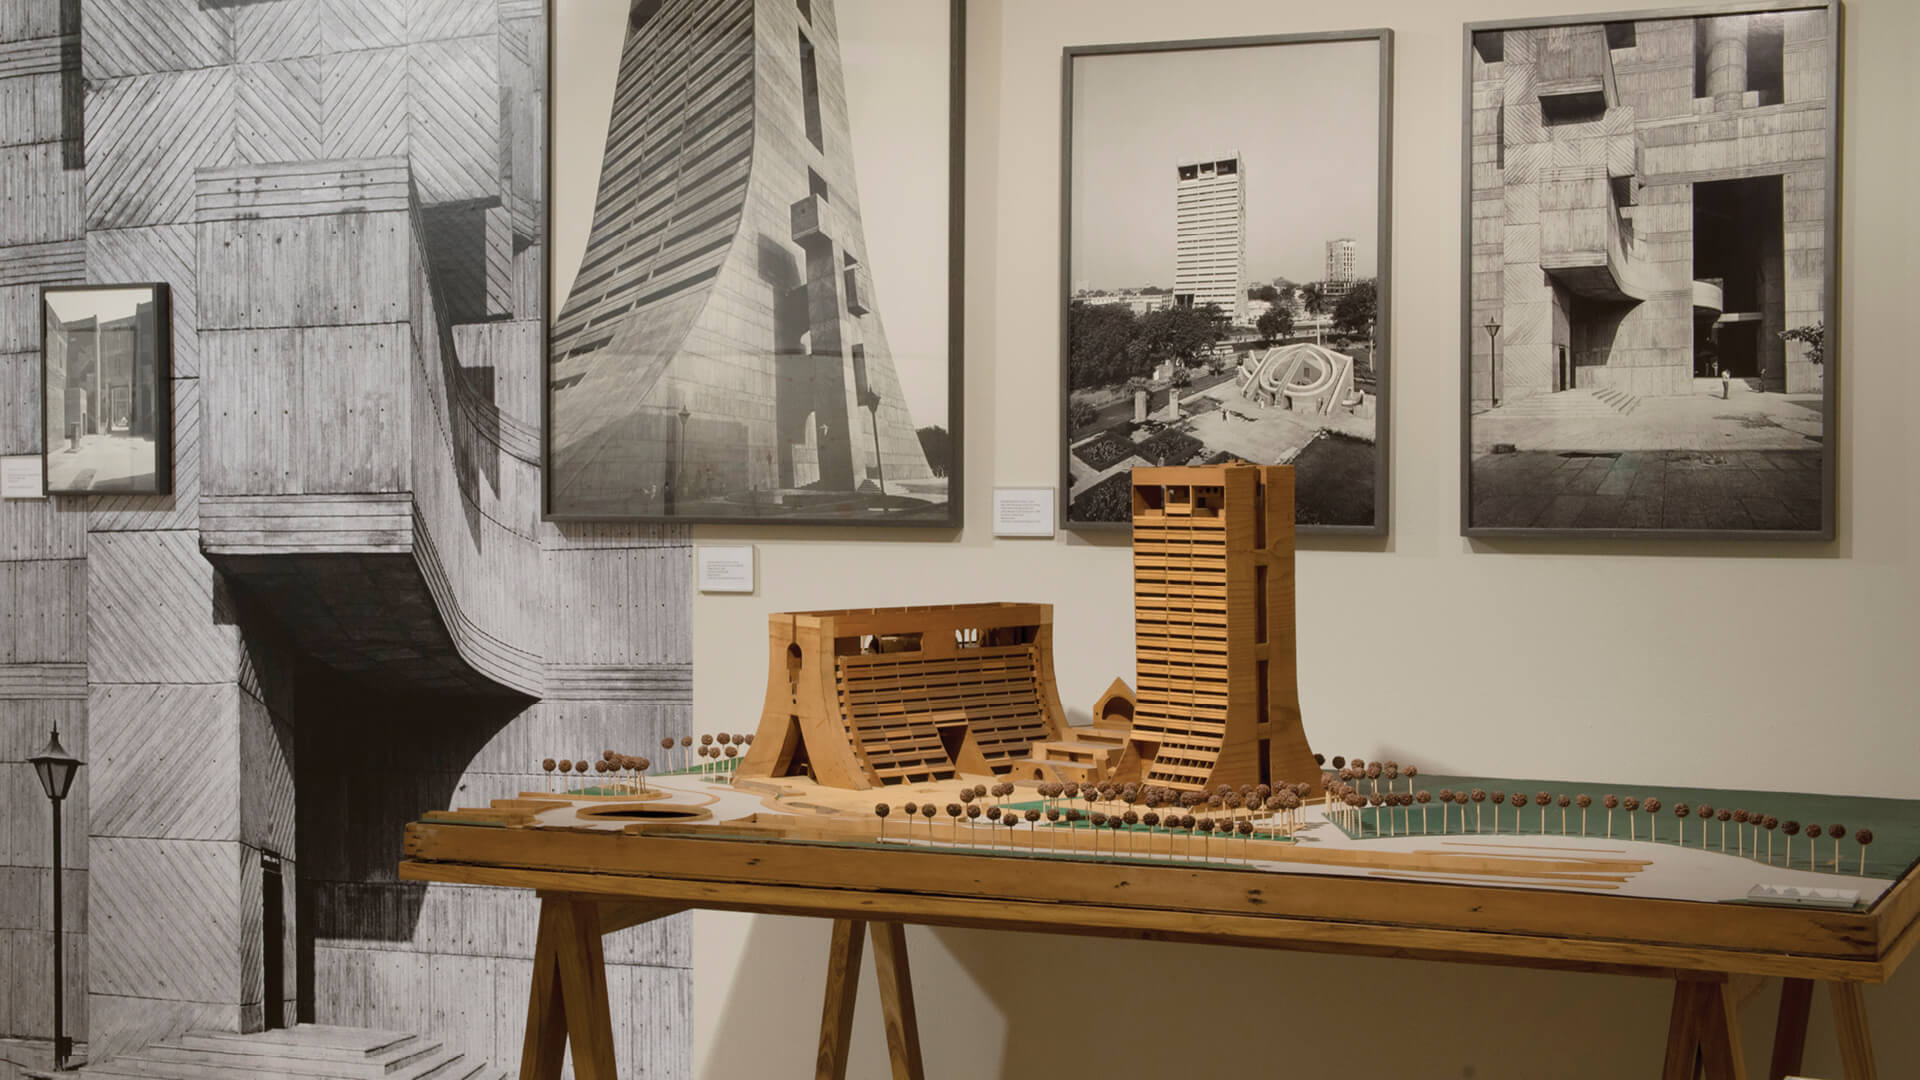 Model and photographs of Kuldip Singh-designed National Cooperative Development Corporation (NCDC) building captured at the 2017 exhibition 'Delhi: Building the Modern' curated by Ram Rahman | Kuldip Singh tribute | STIRworld